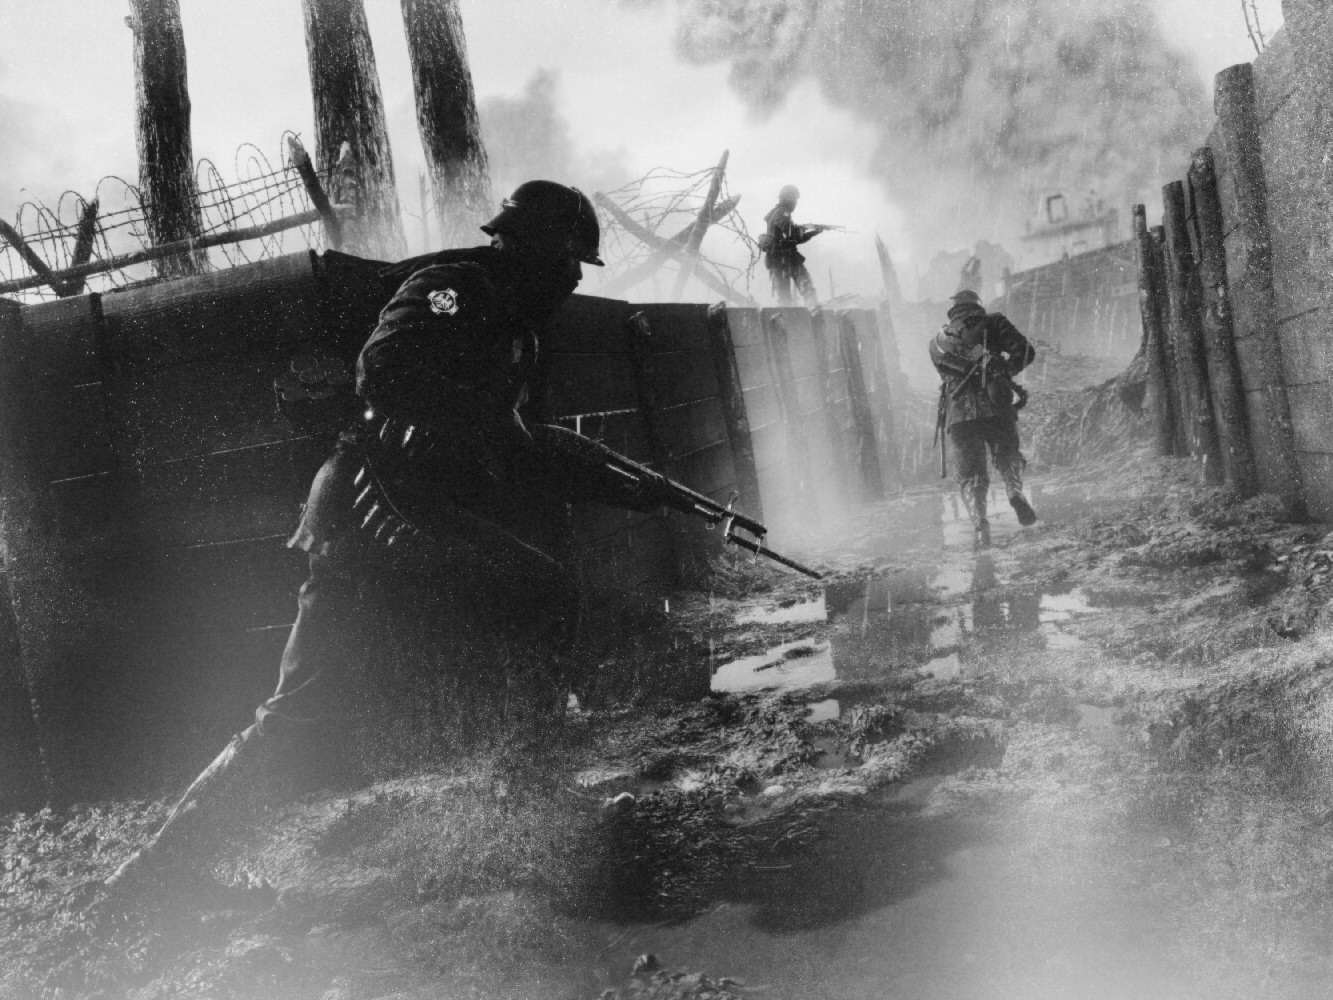 Battlefield 1 Screens Look Hauntingly Realistic With Black & White Filter tdE5Gqy